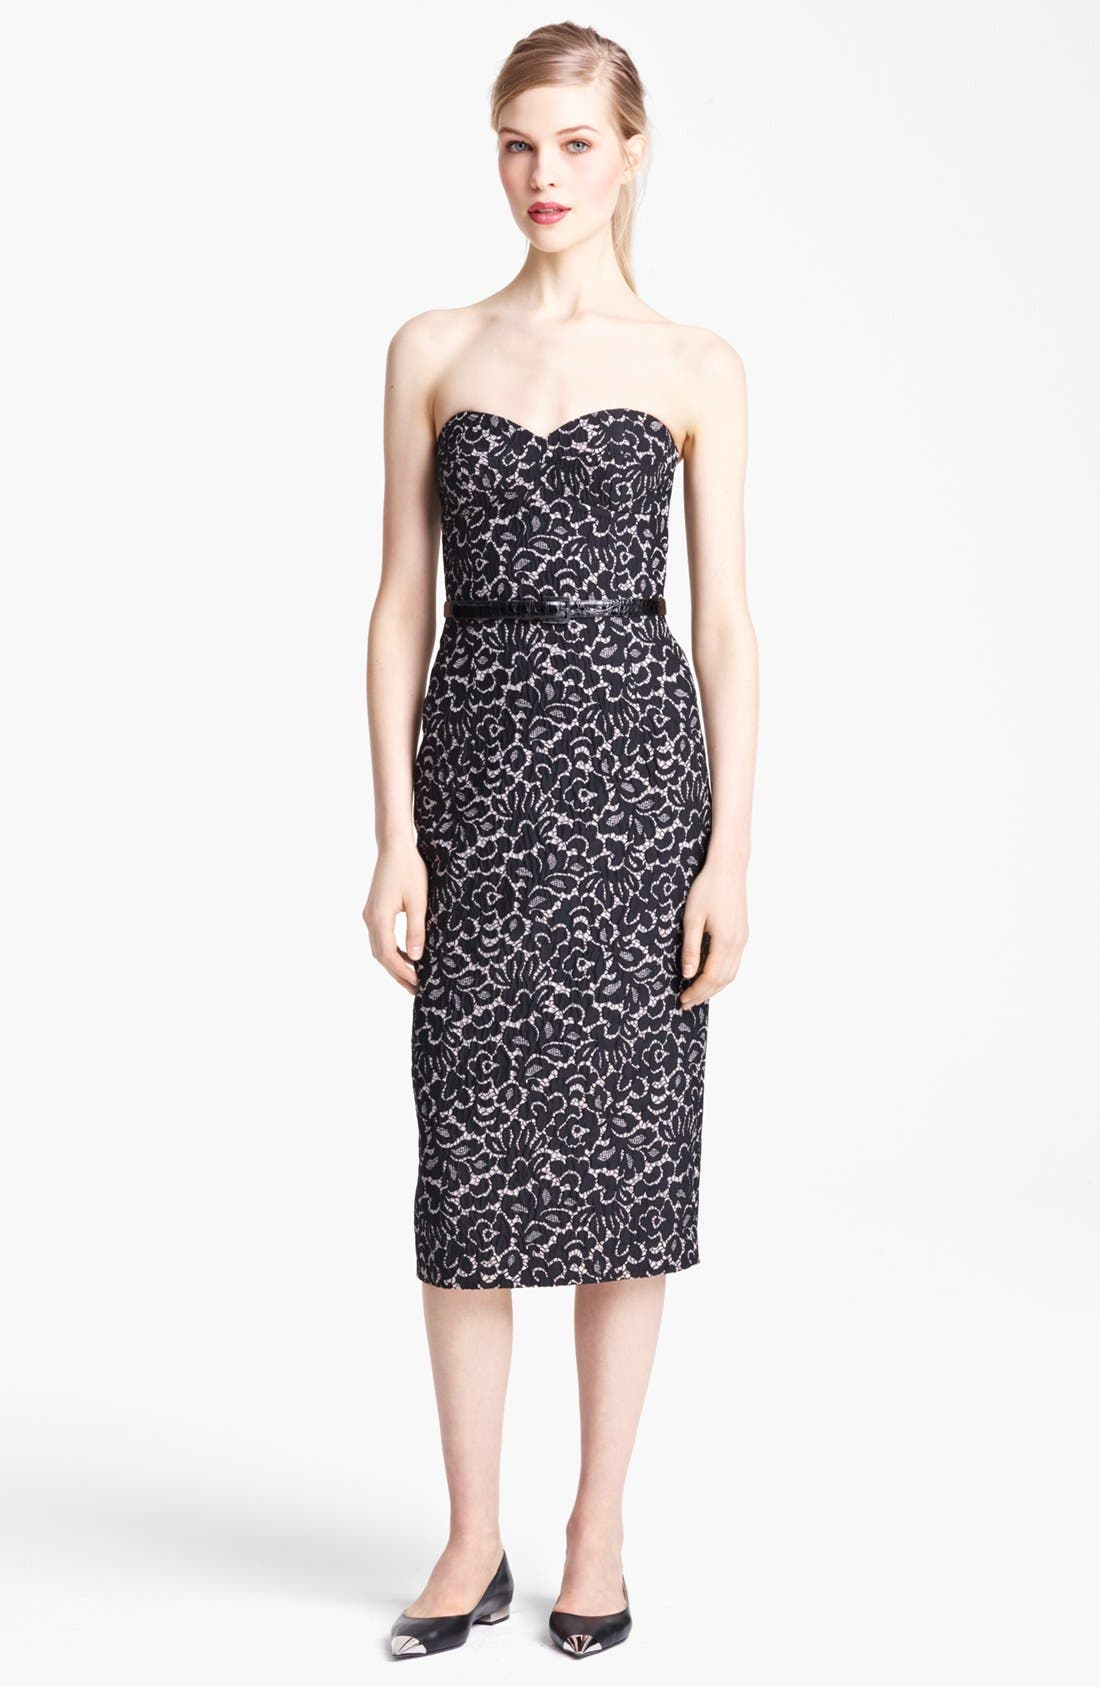 Main Image - Michael Kors Strapless Featherweight Lace Jacquard Dress